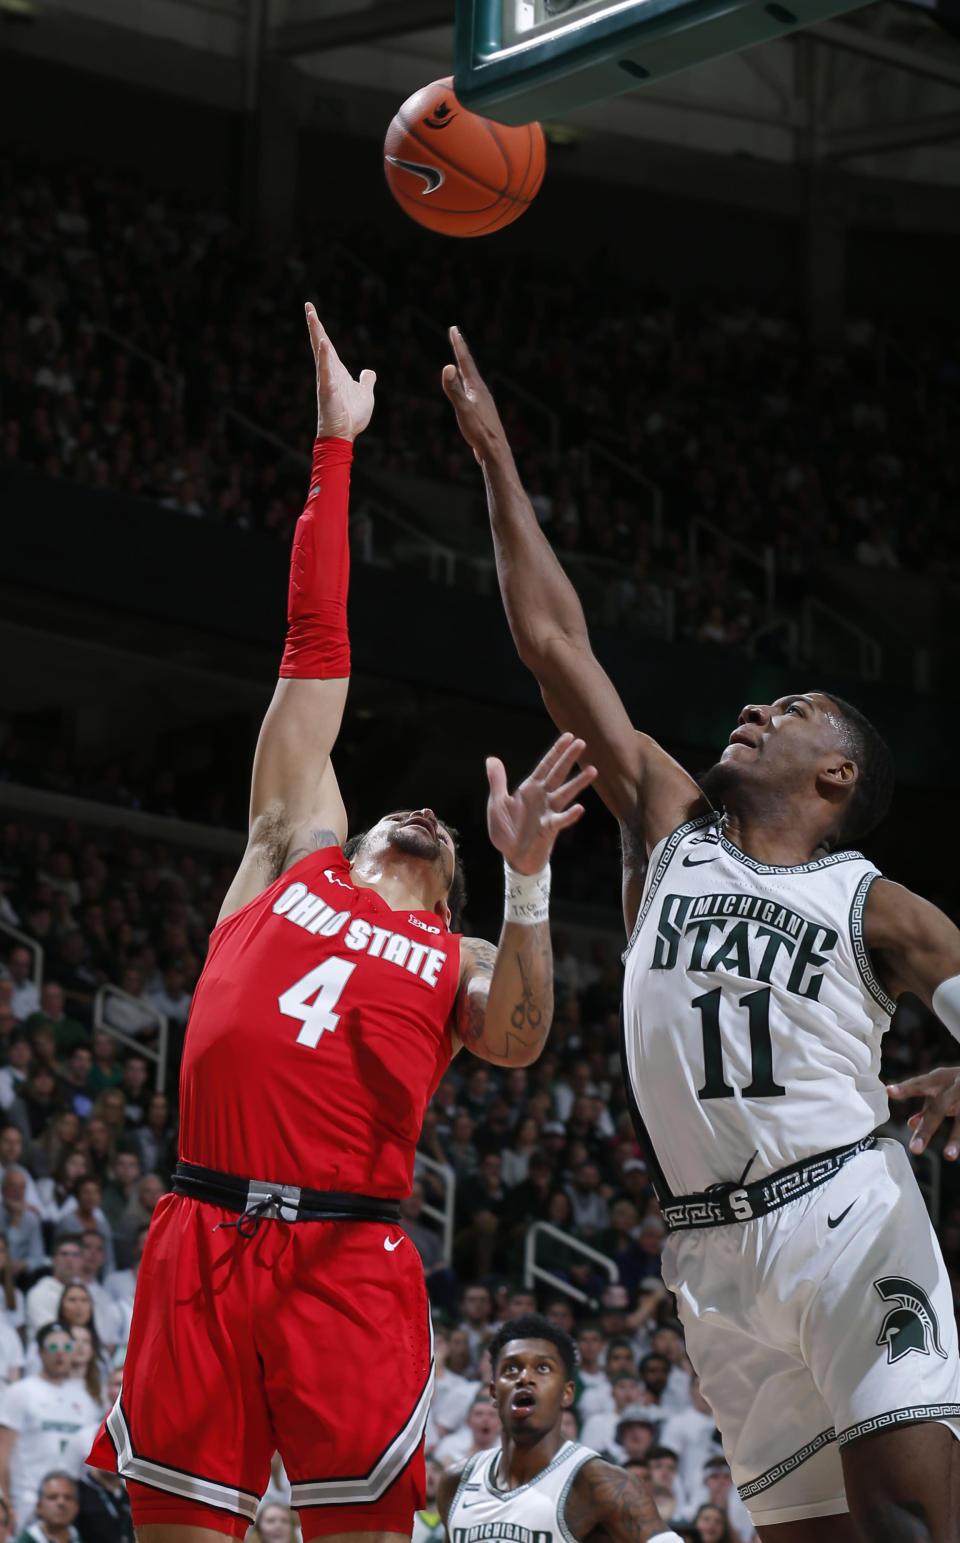 Ohio State's Duane Washington Jr., left, shoots against Michigan State's Aaron Henry (11) during the first half of an NCAA college basketball game, Sunday, March 8, 2020, in East Lansing, Mich. (AP Photo/Al Goldis)